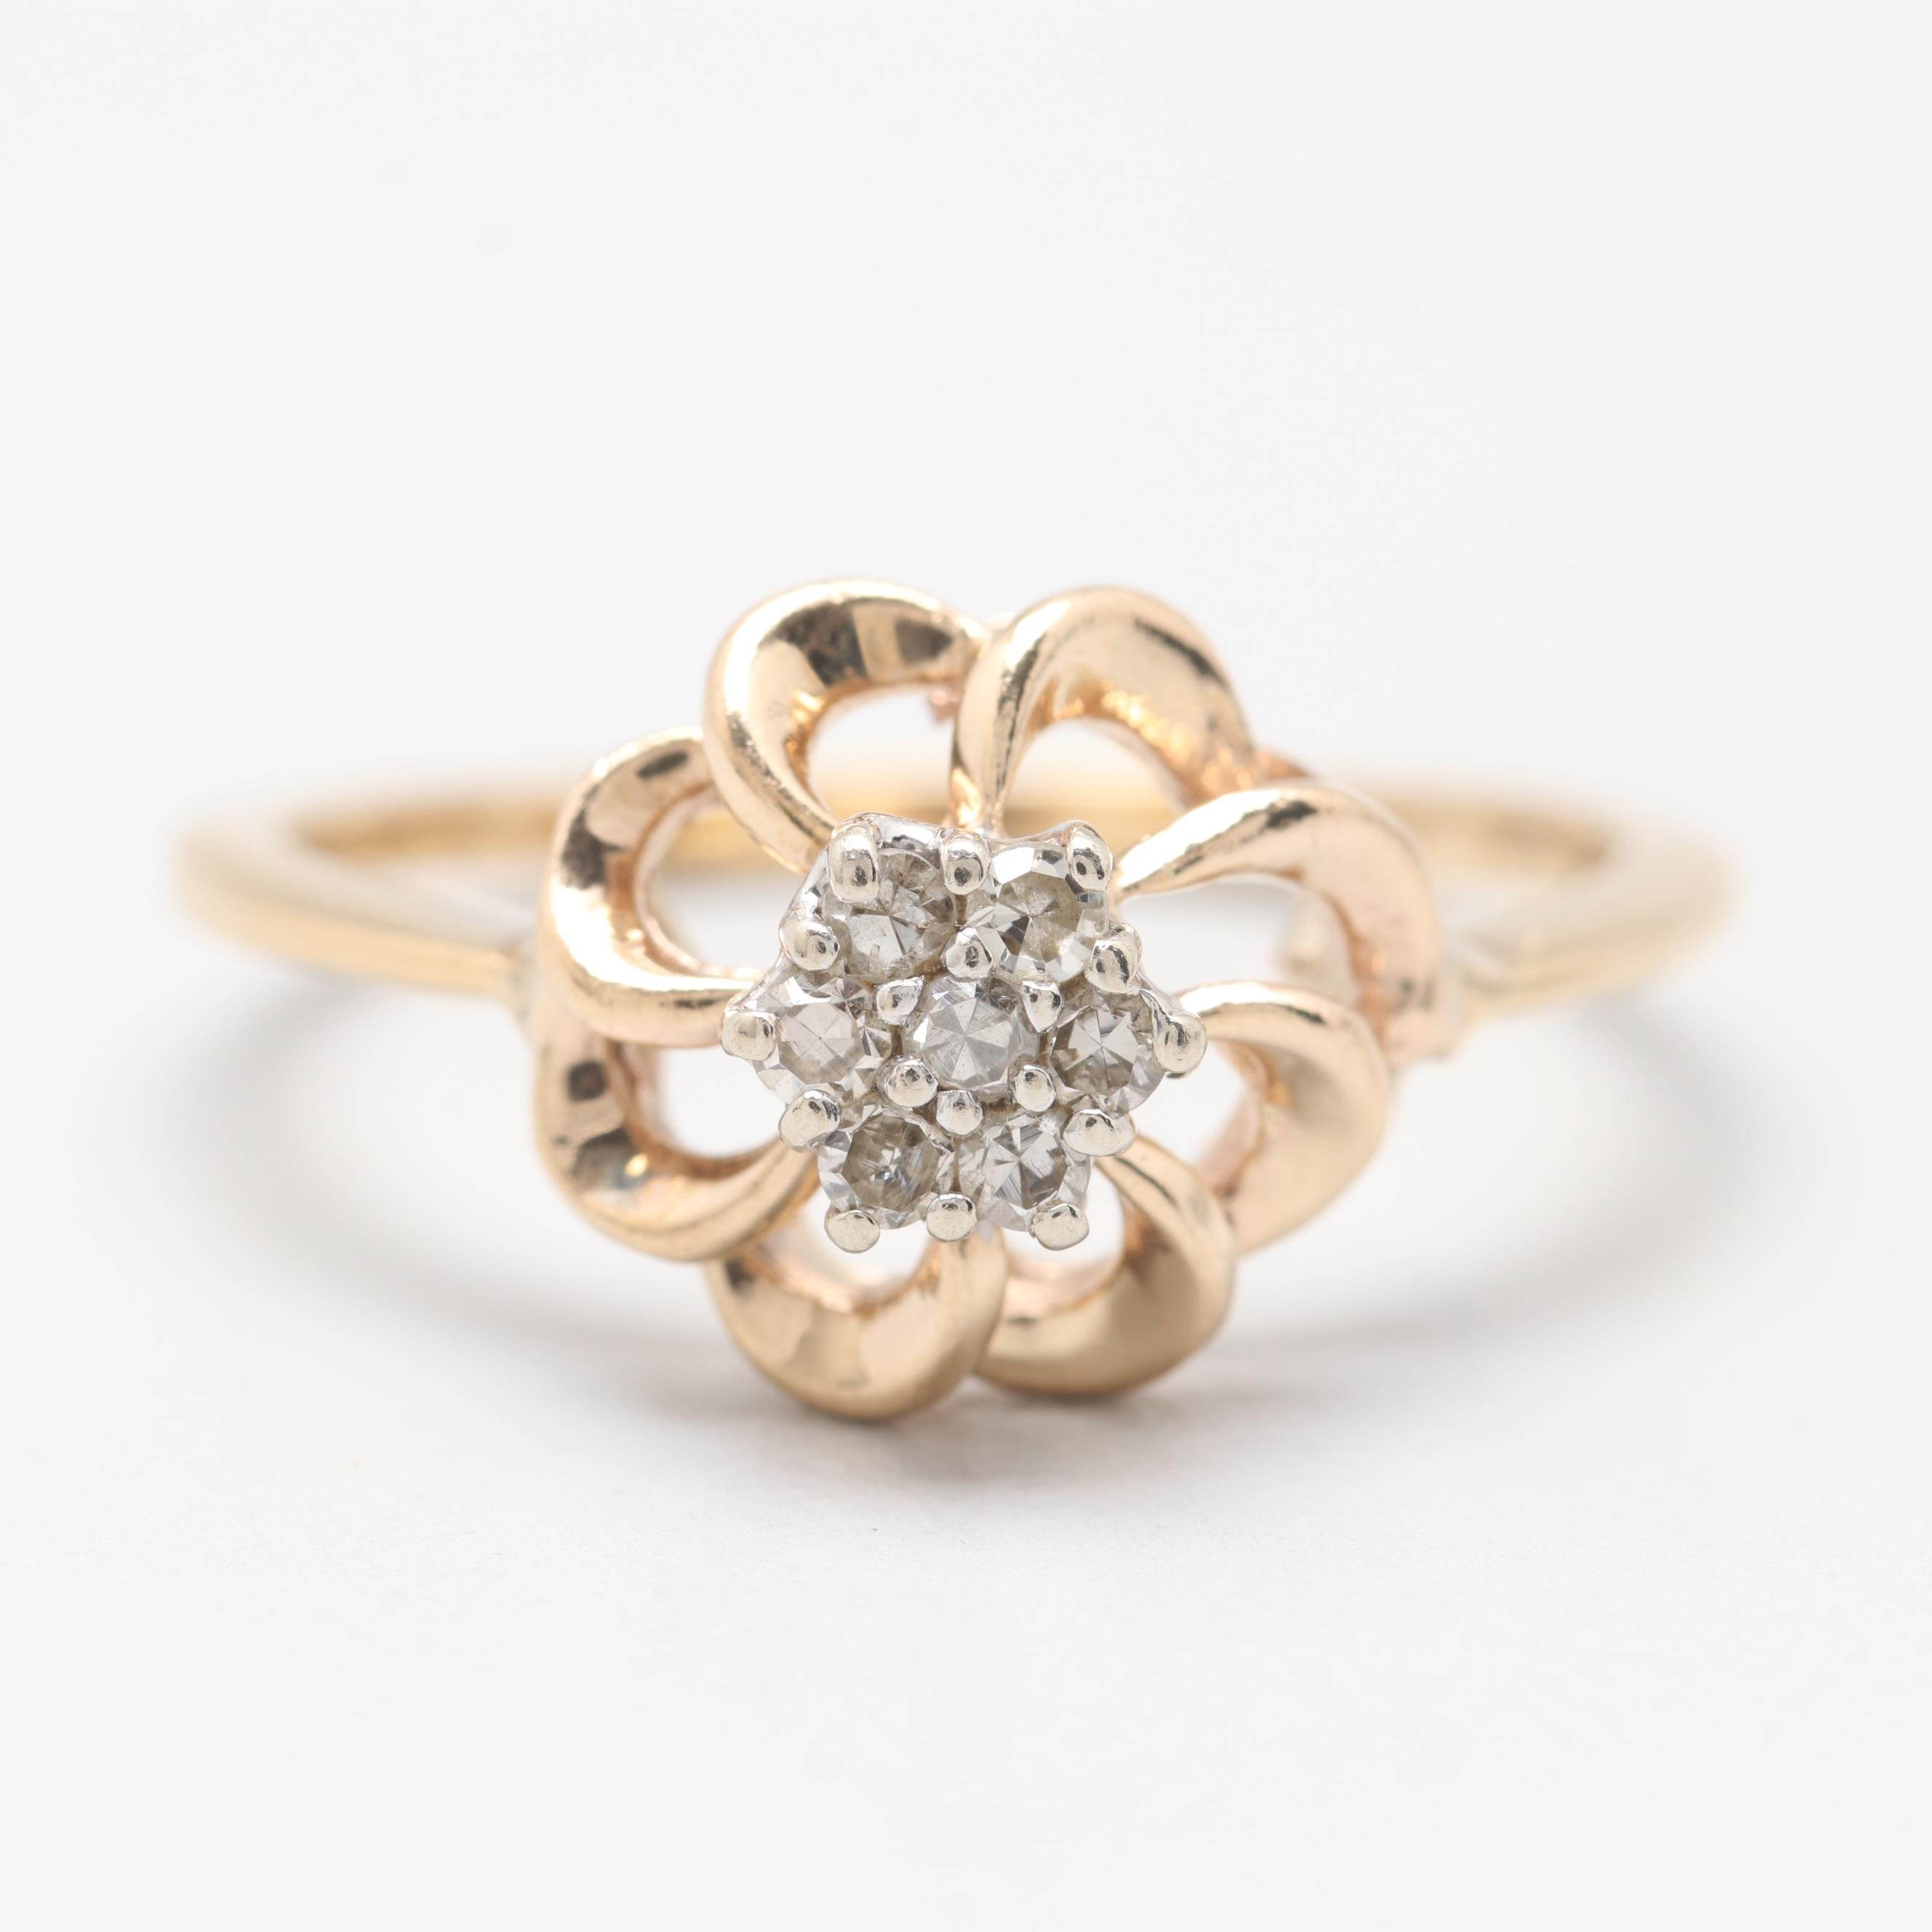 14K Yellow Gold Floral Diamond Cluster Ring